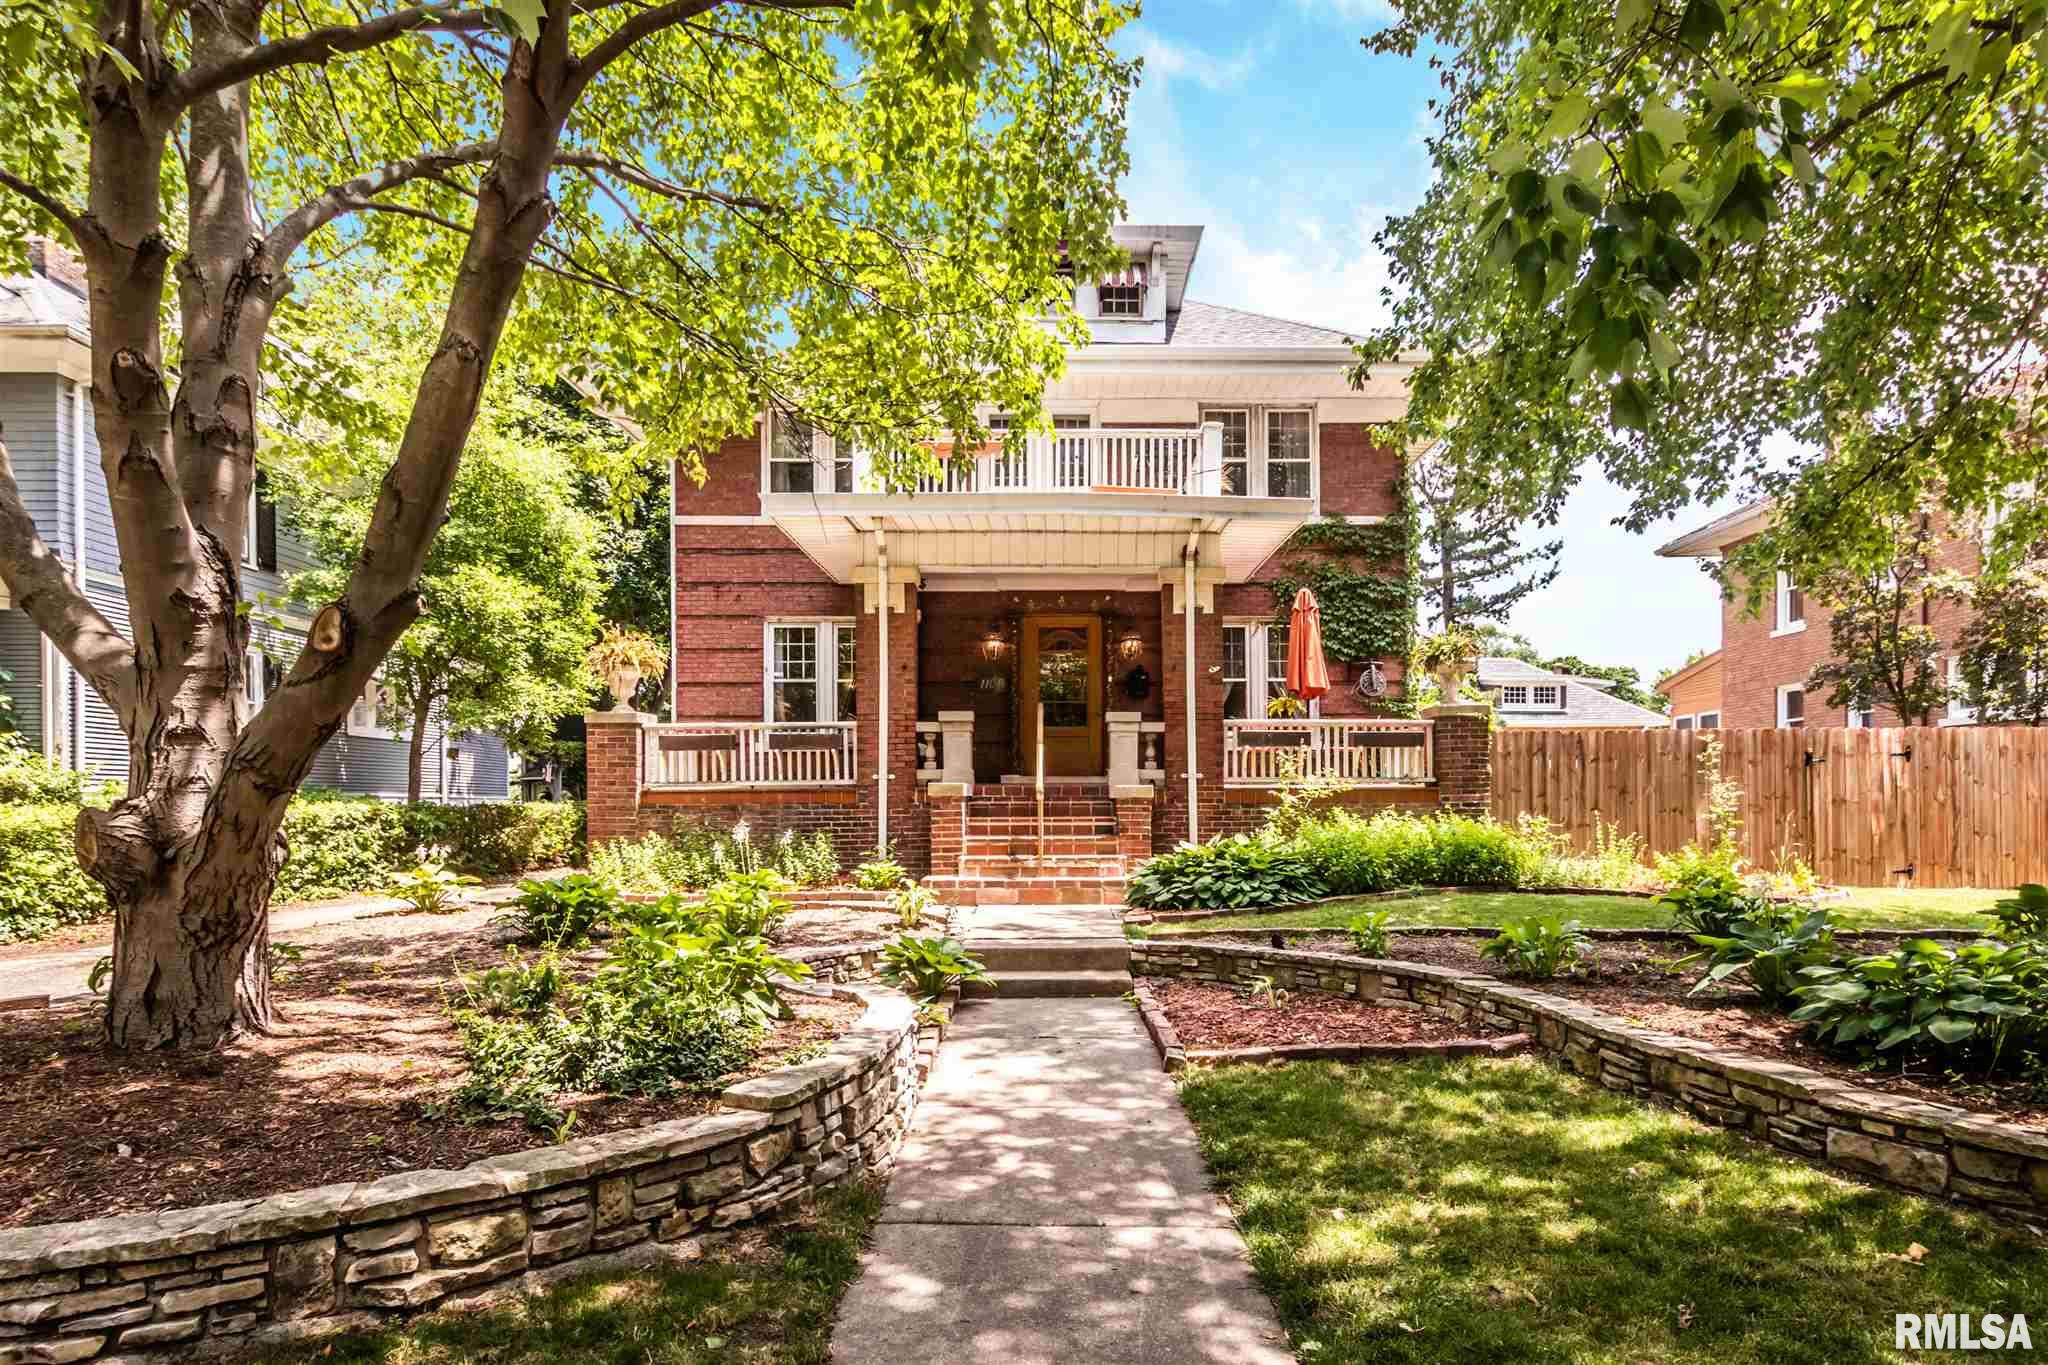 1106 N PARKSIDE Property Photo - Peoria, IL real estate listing